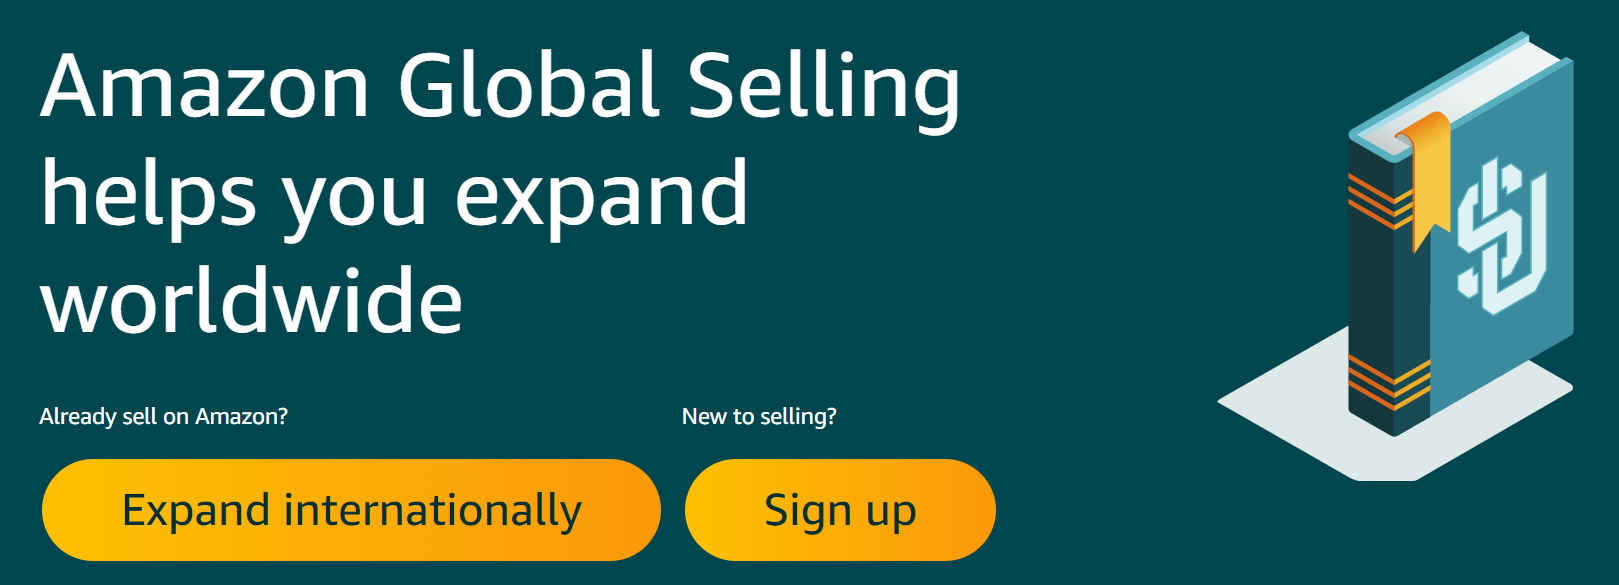 amazon-global-selling